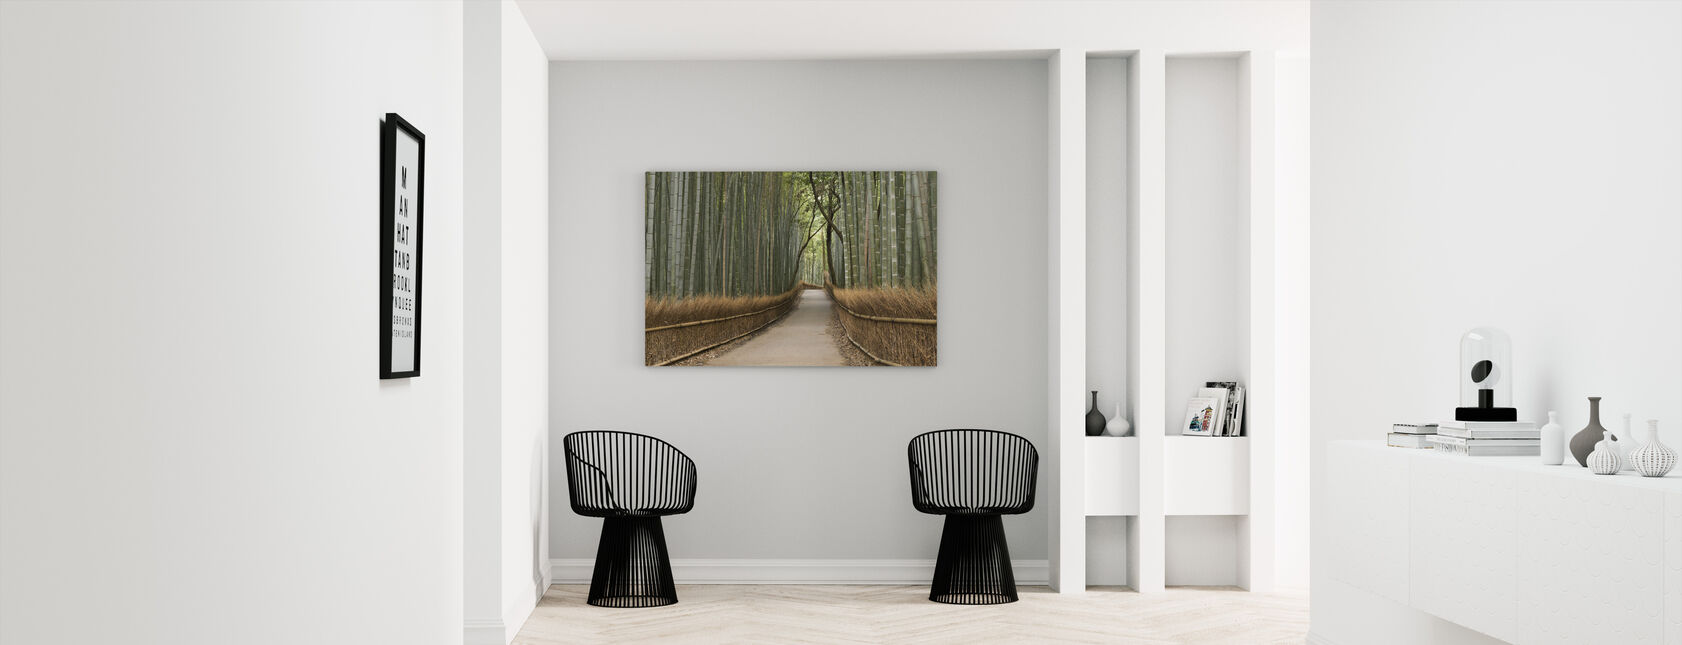 Tenryu-ji Temple Passage - Canvas print - Hallway